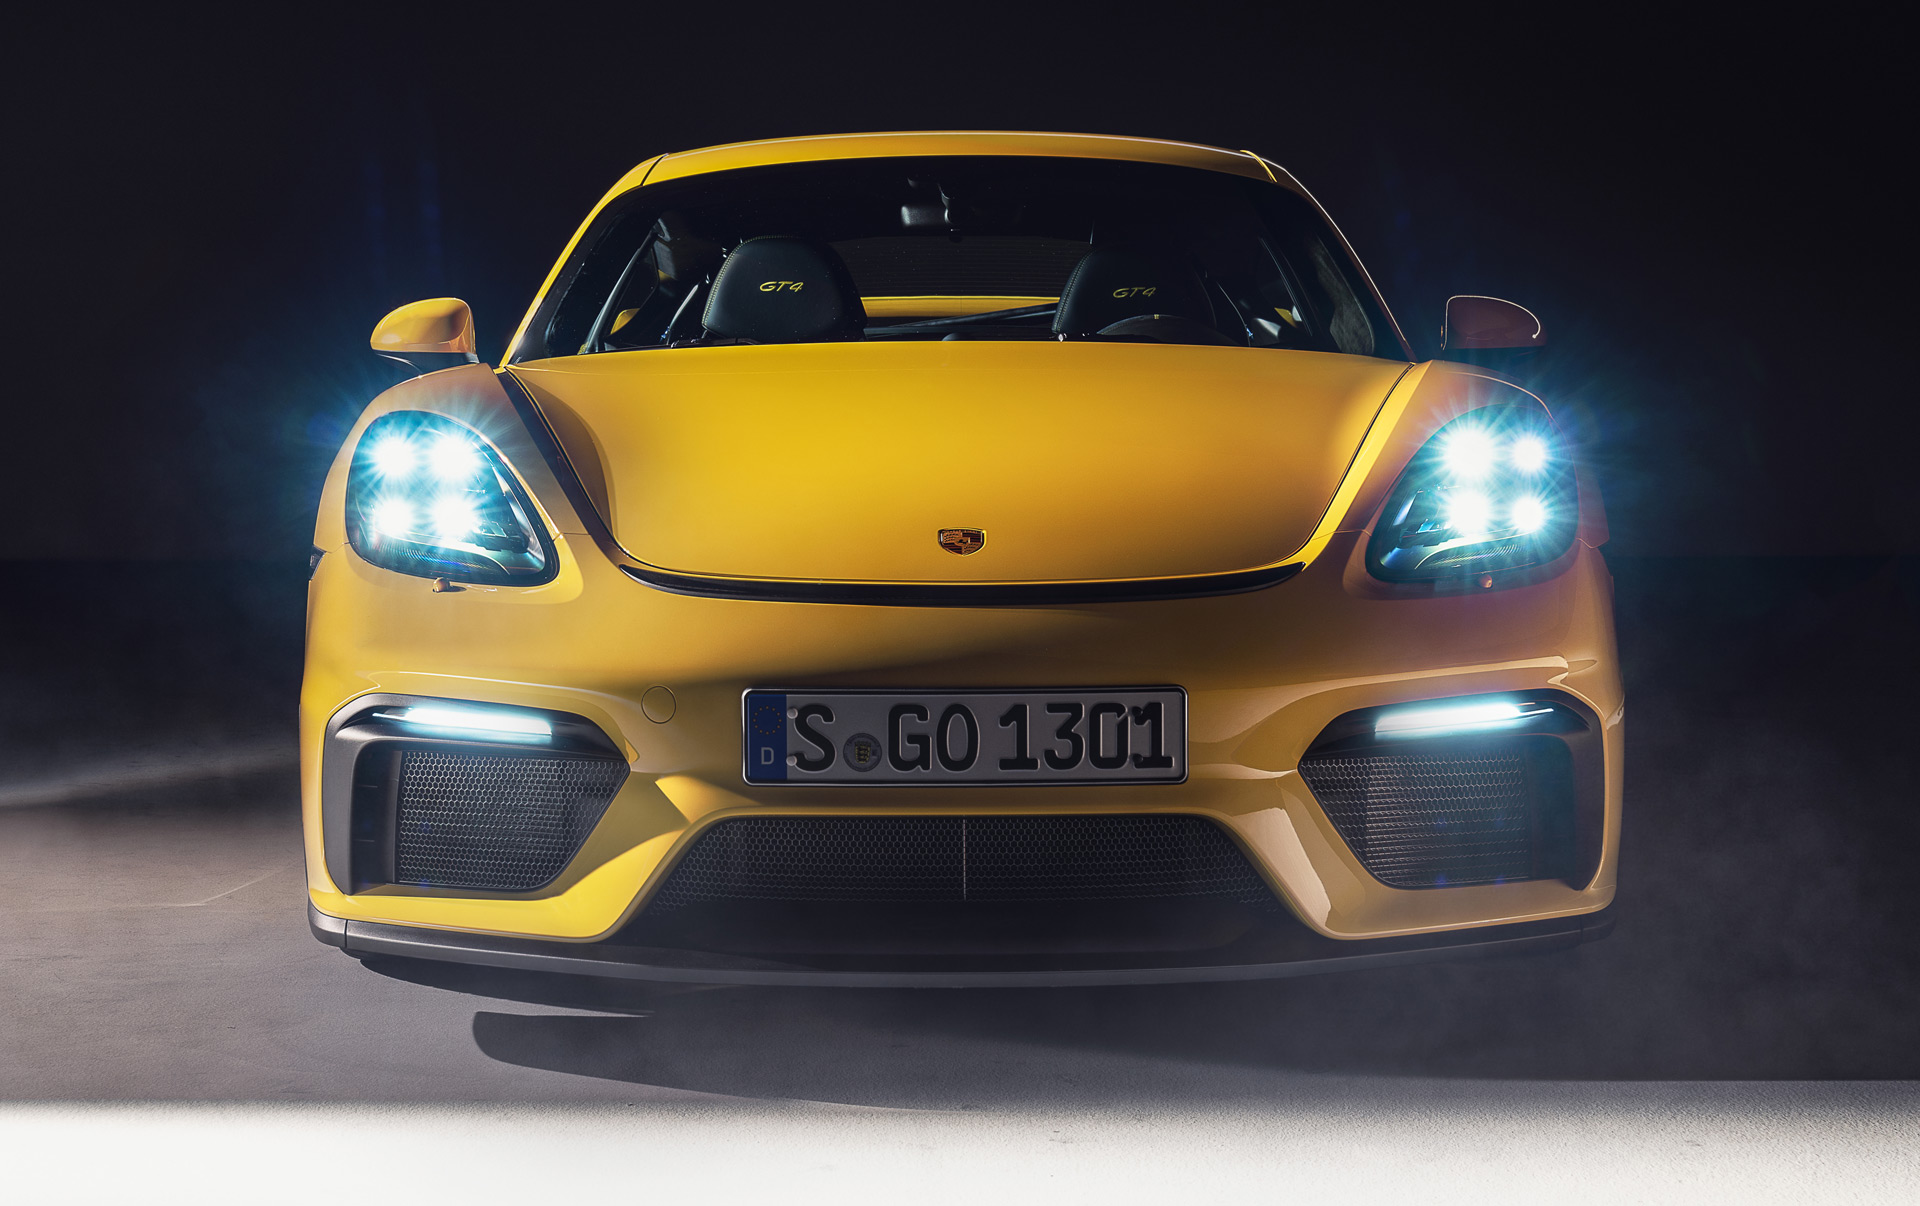 Electric Porsche 718 Sports Car Reportedly Coming In 2023 With 400 Horsepower